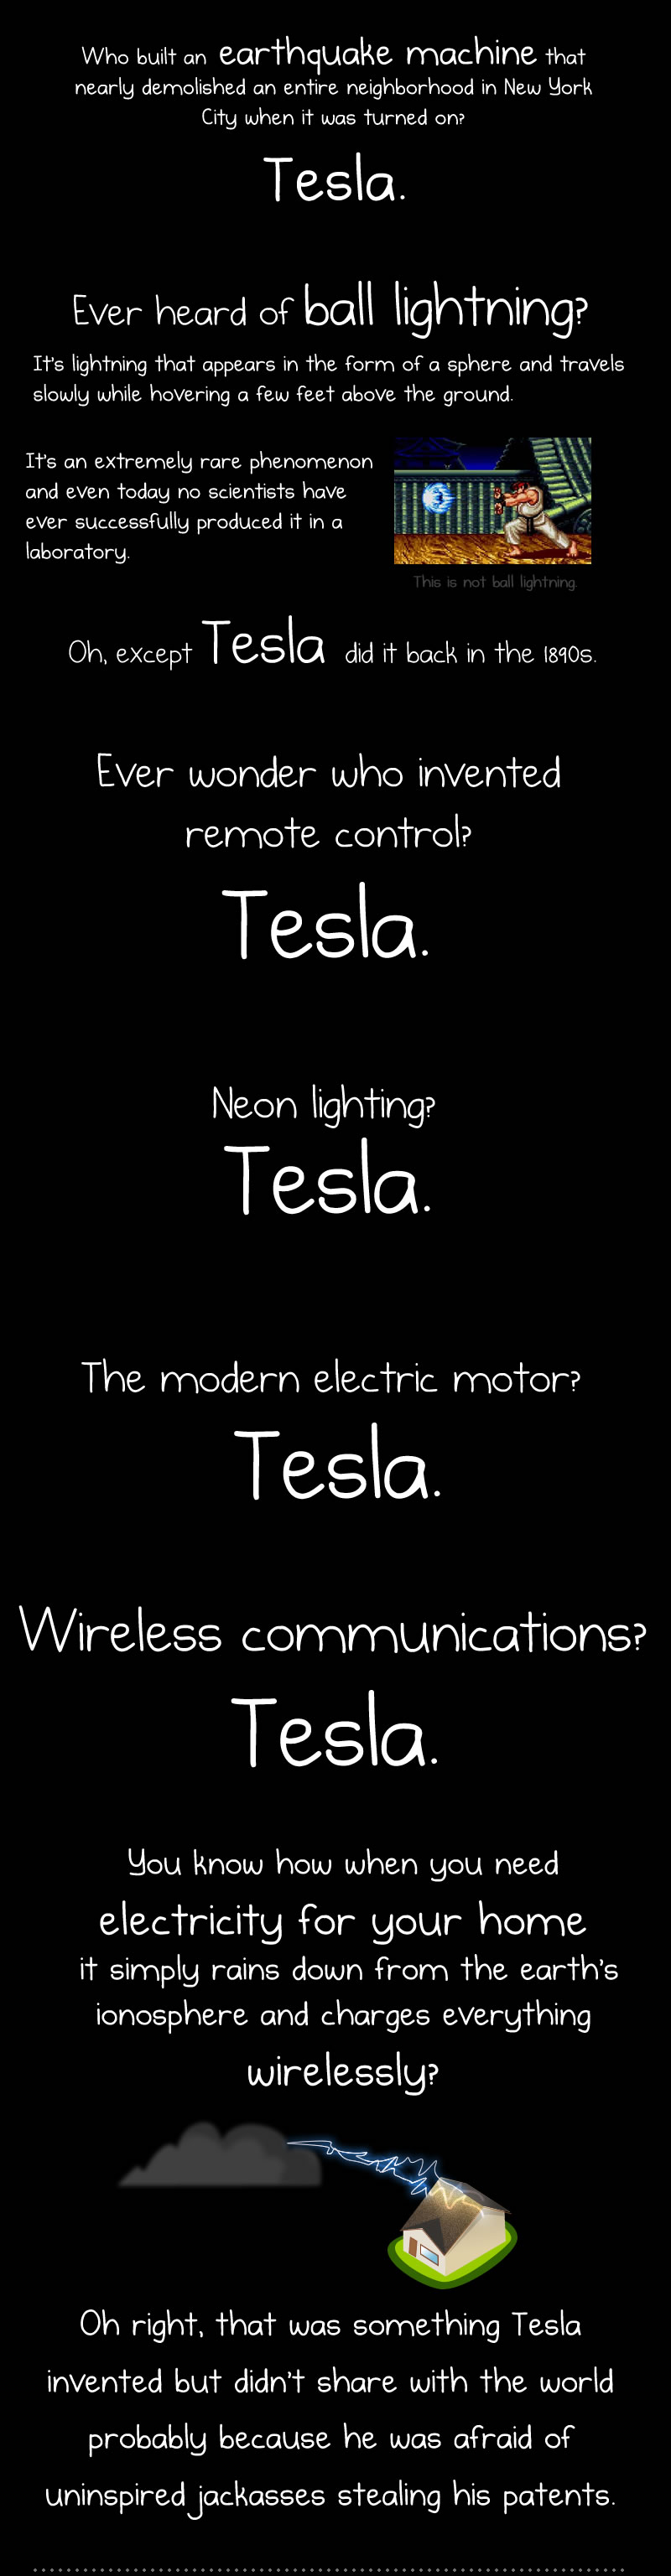 http://s3.amazonaws.com/theoatmeal-img/comics/tesla/6.jpg